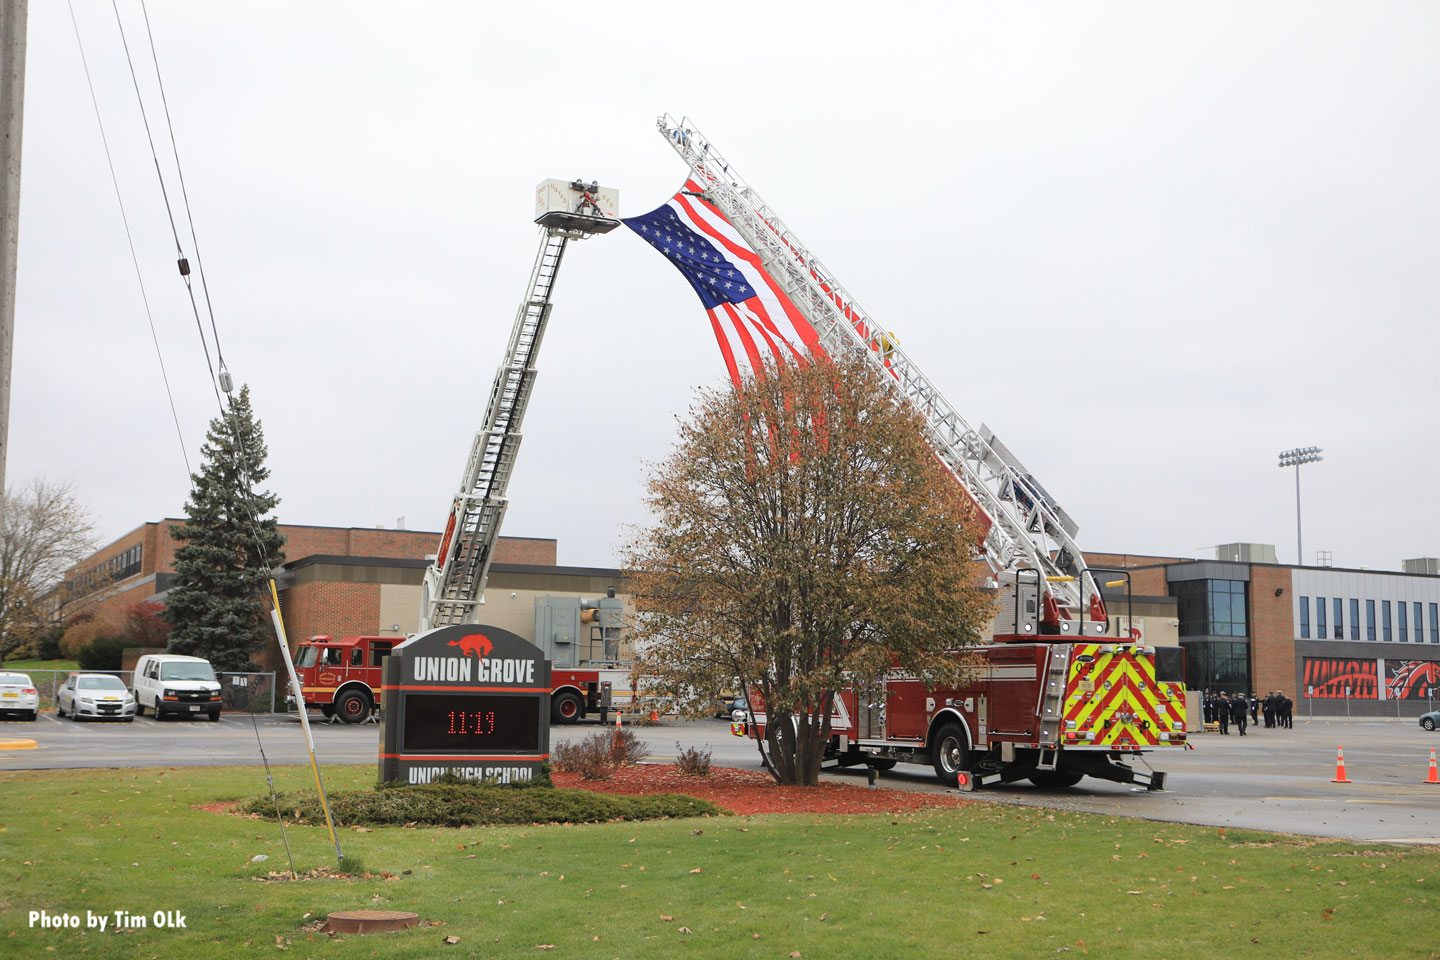 Another shot of flag and apparatus